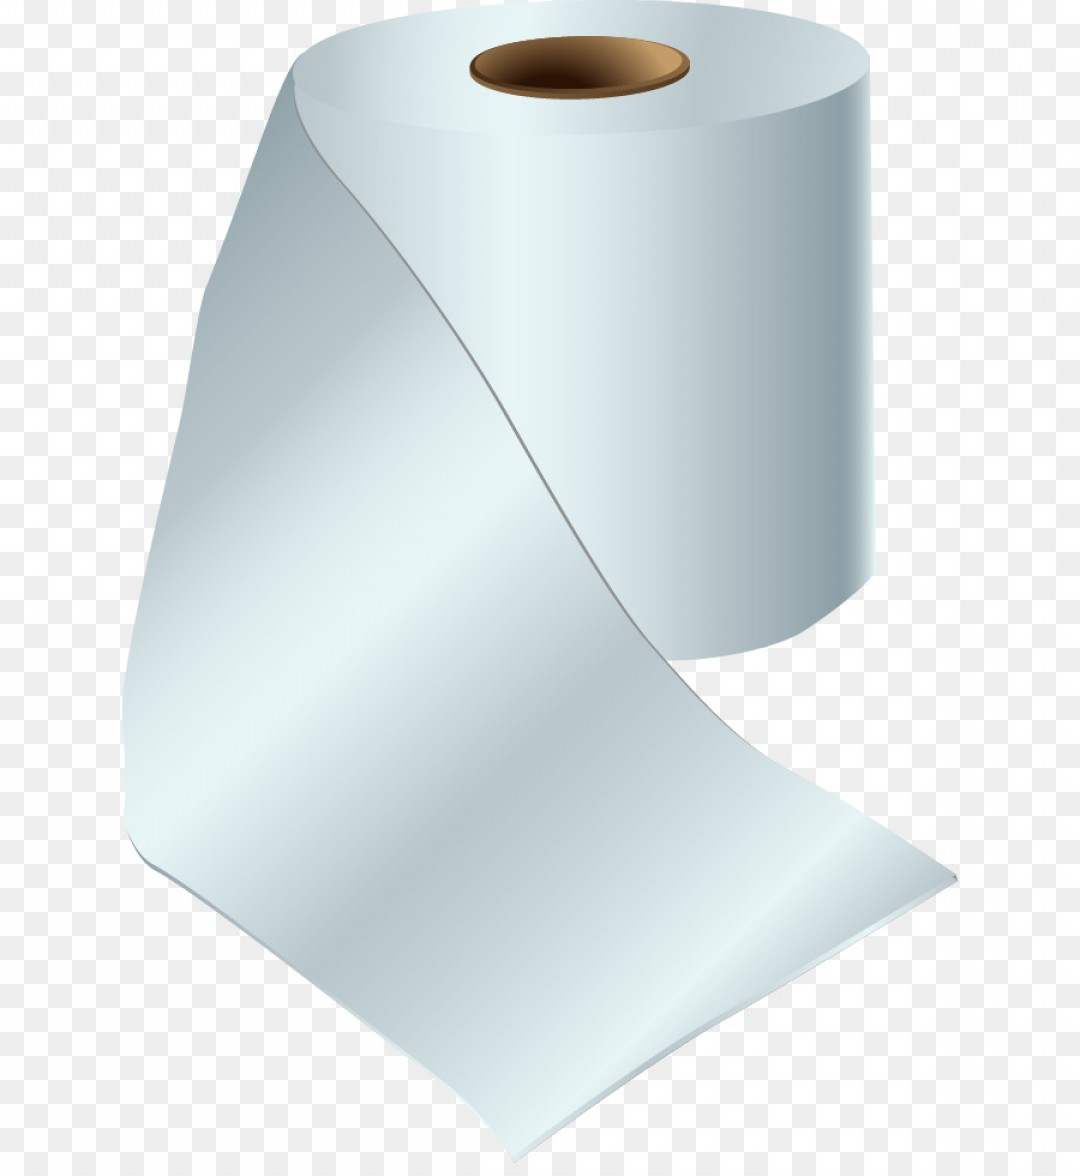 Toilet Paper Vector: Png Toilet Paper A Roll Of Toilet Paper Vector Materia